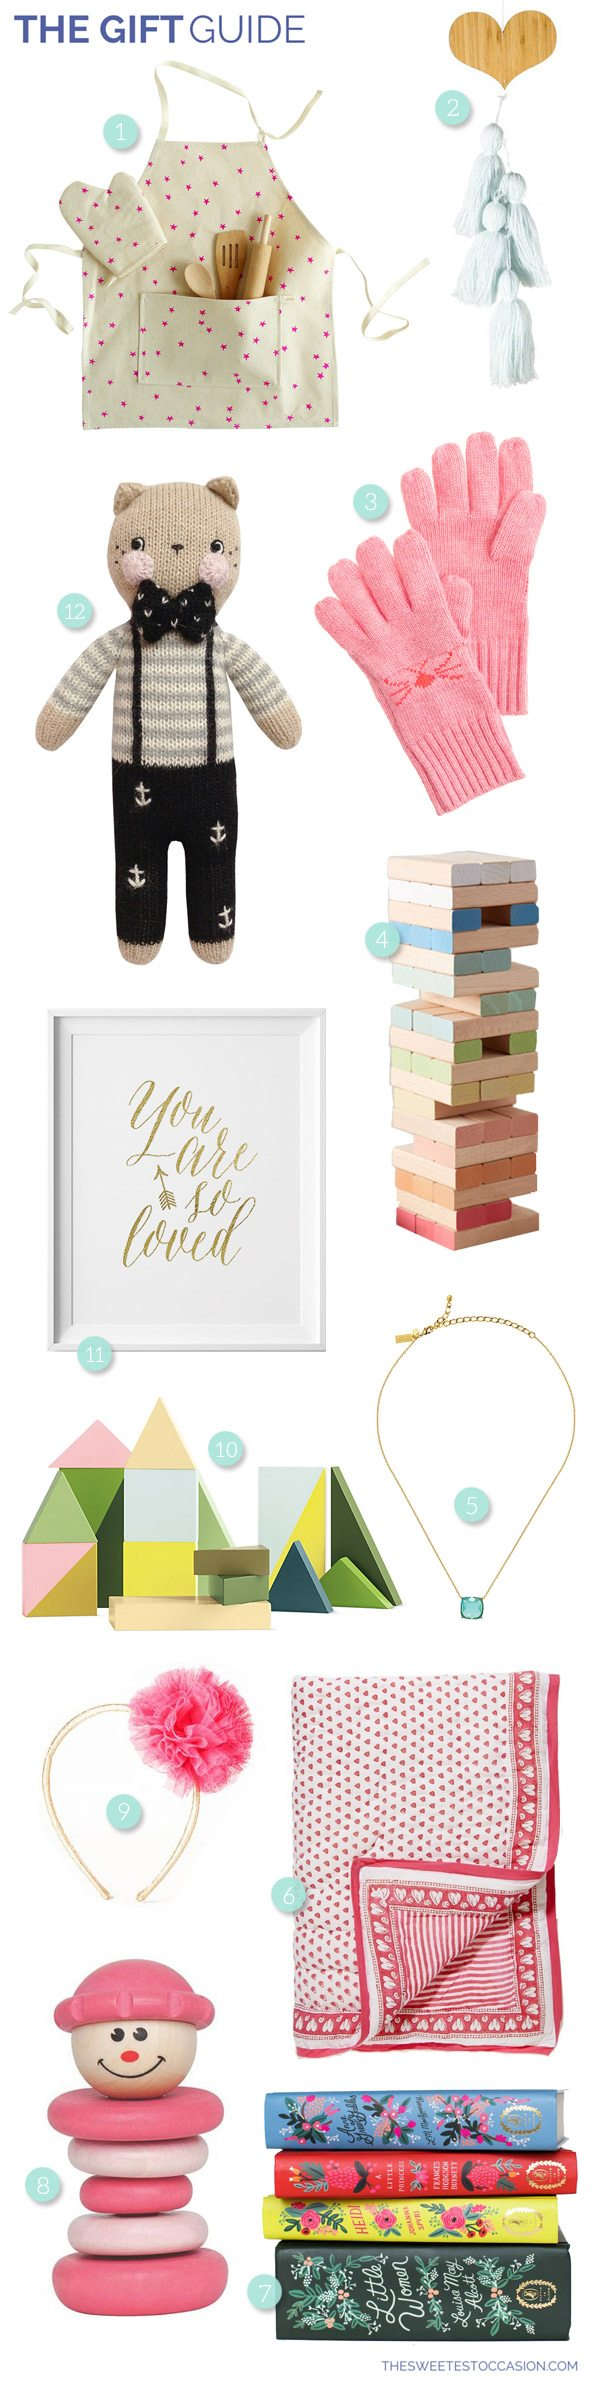 The Gift Guide: Gifts for Girls from @cydconverse